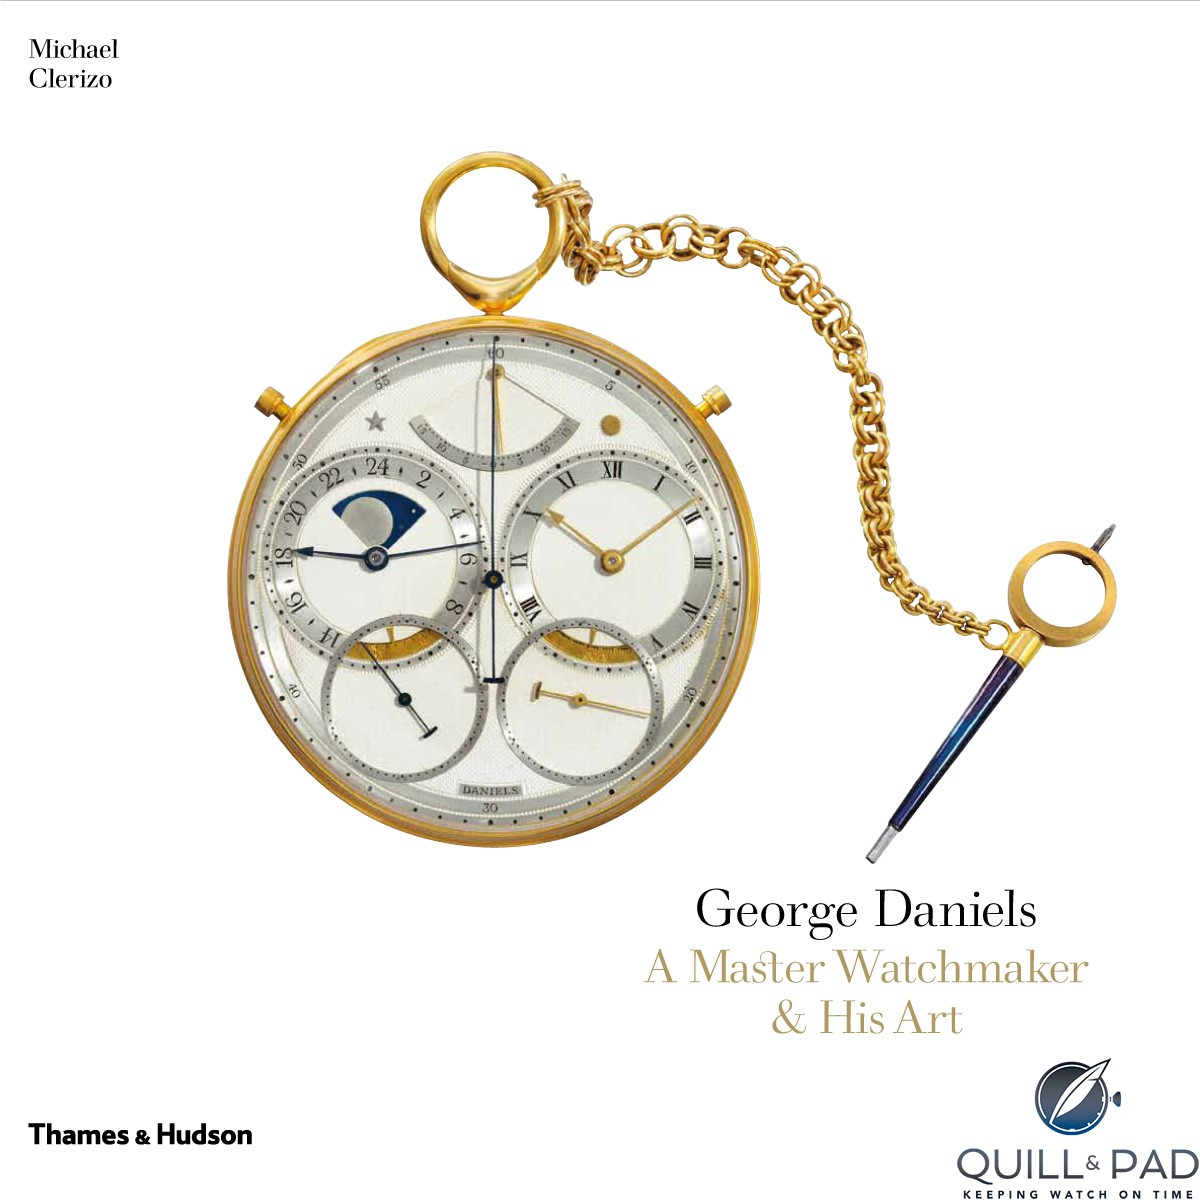 Cover of Michael Clerizo's book, 'George Daniels, A Master Watchmaker & His Art'